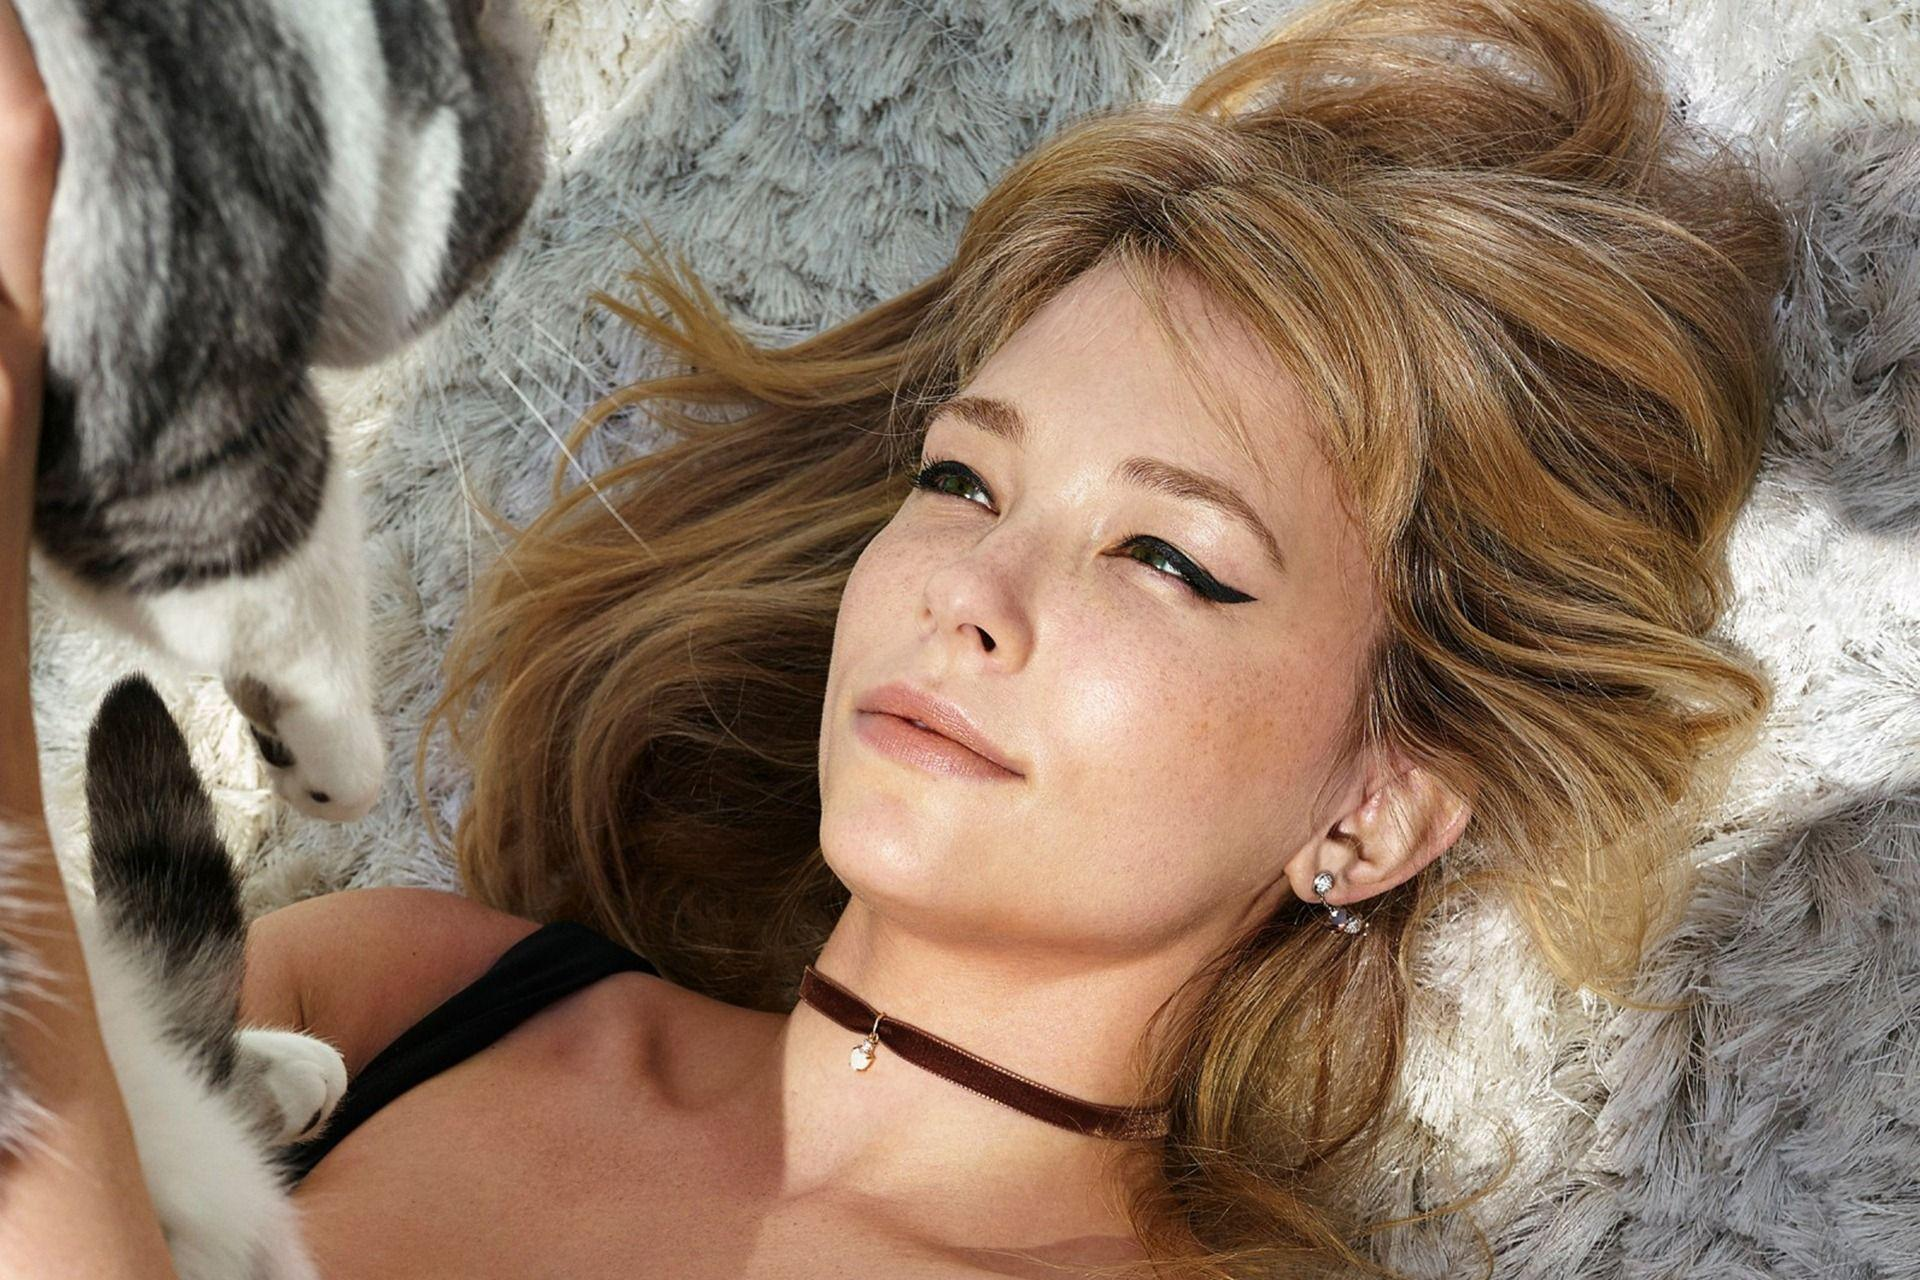 Haley Bennett 2017 Wallpaper 11968 - Baltana